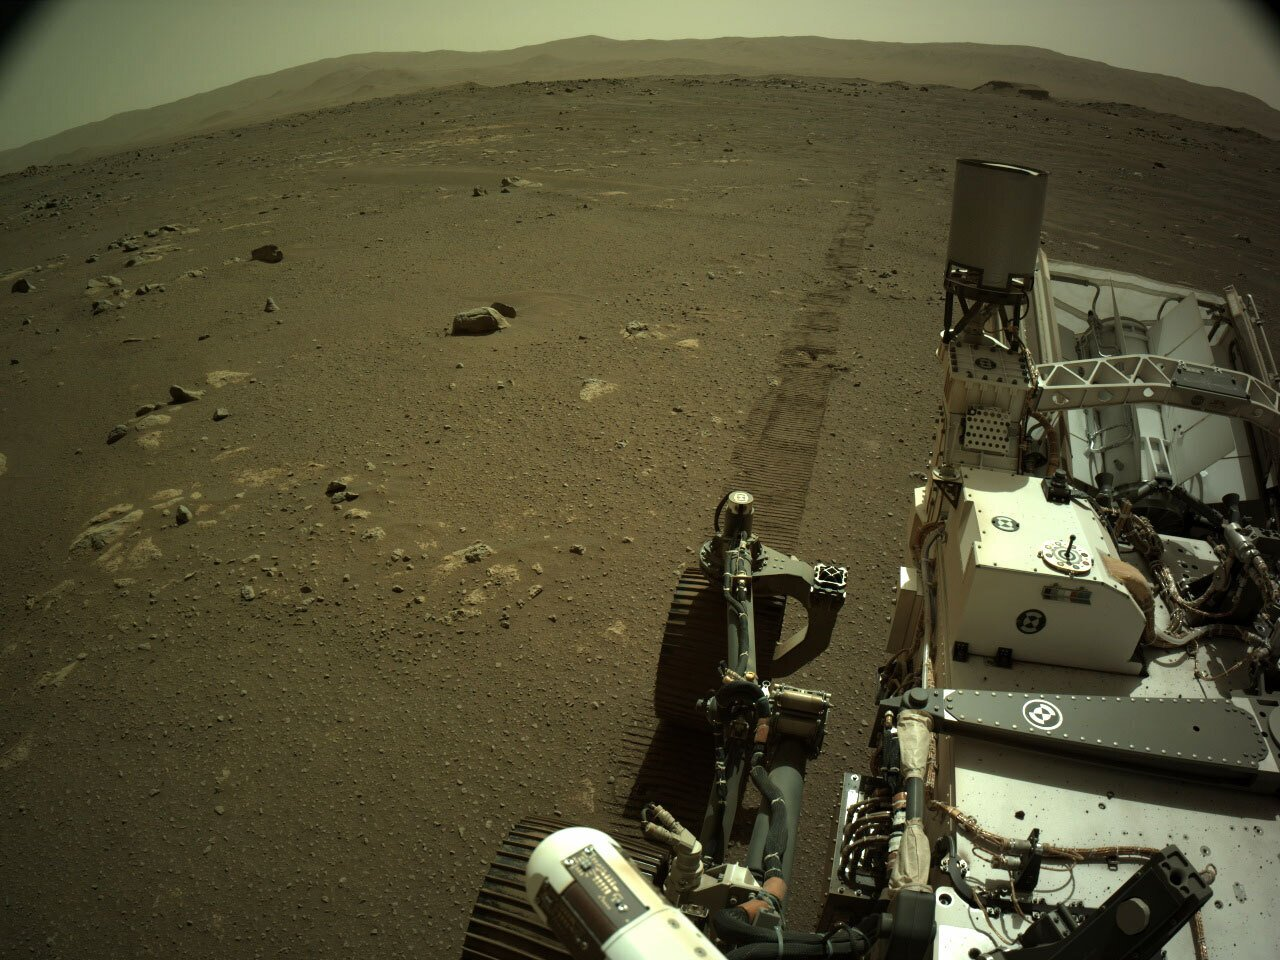 Mars rover sends back grinding squealing sounds of driving – Associated Press